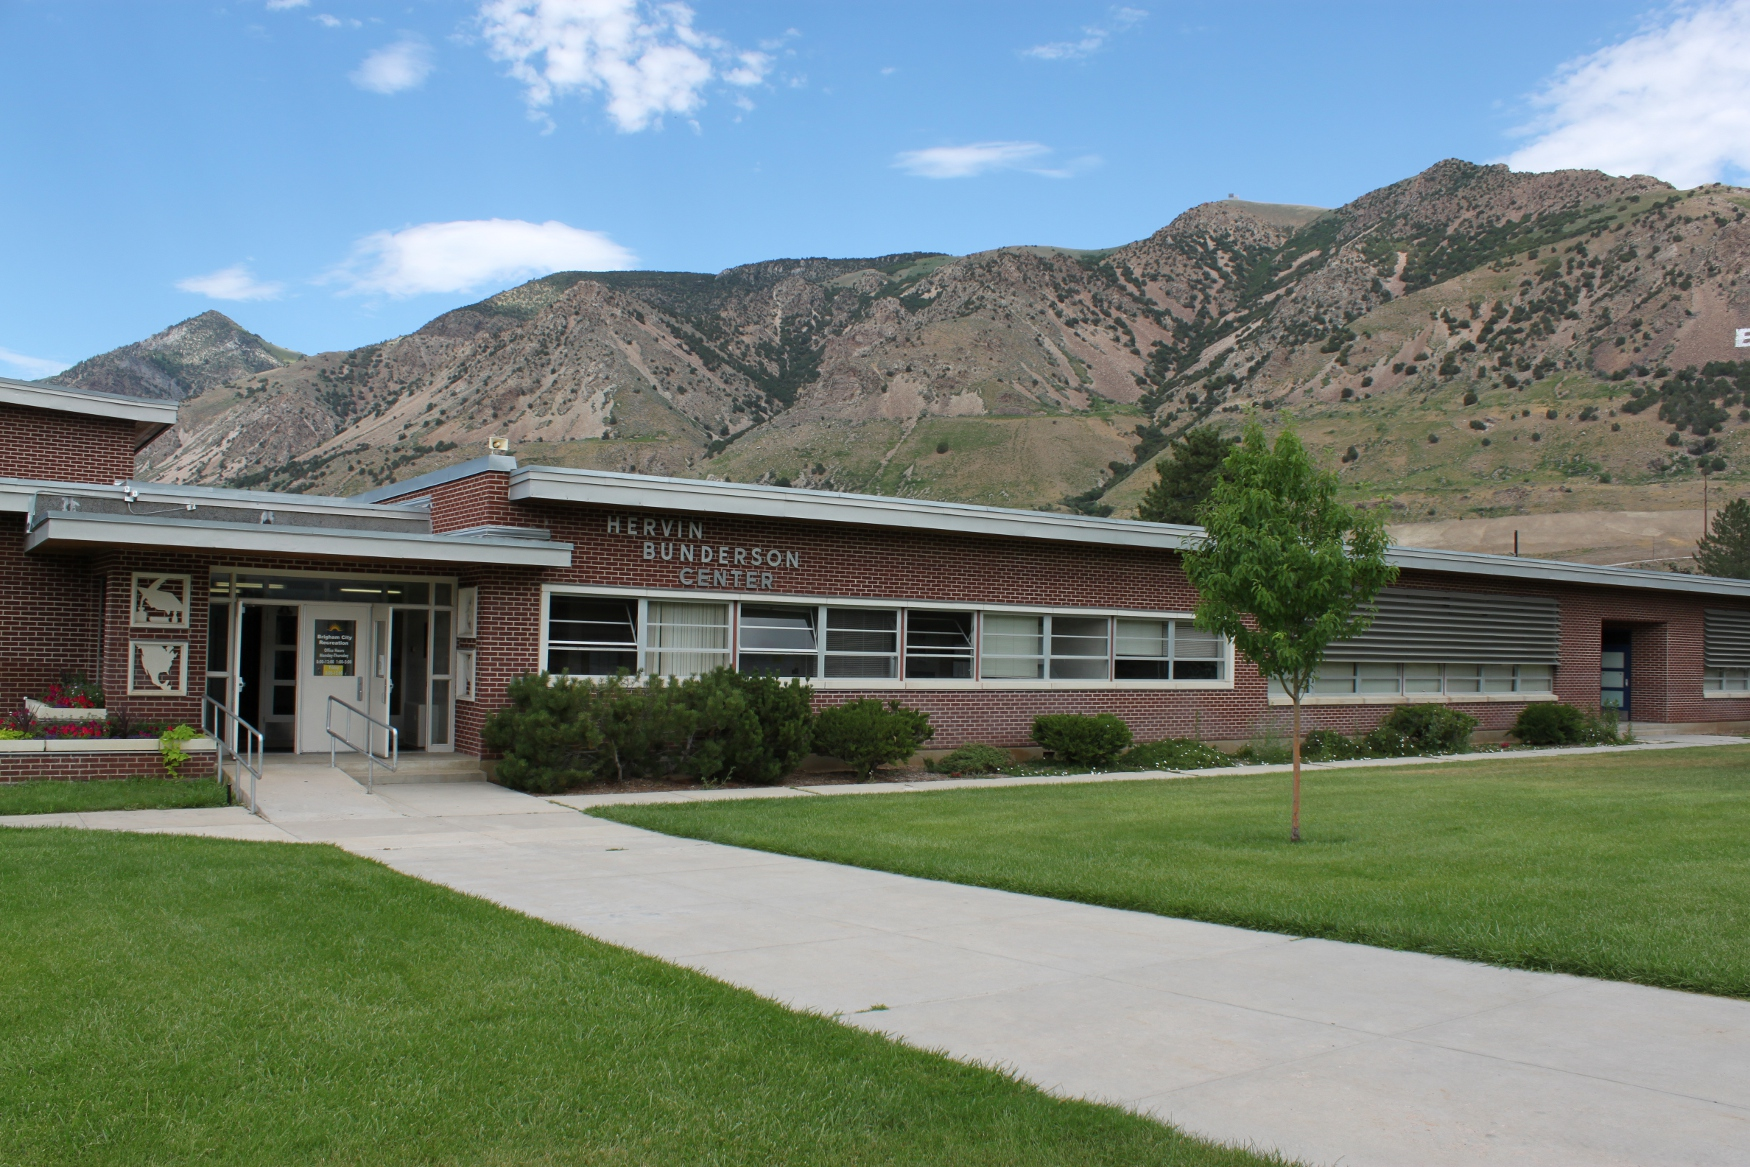 The Box Elder Museum opened in 2009 in the King Building.